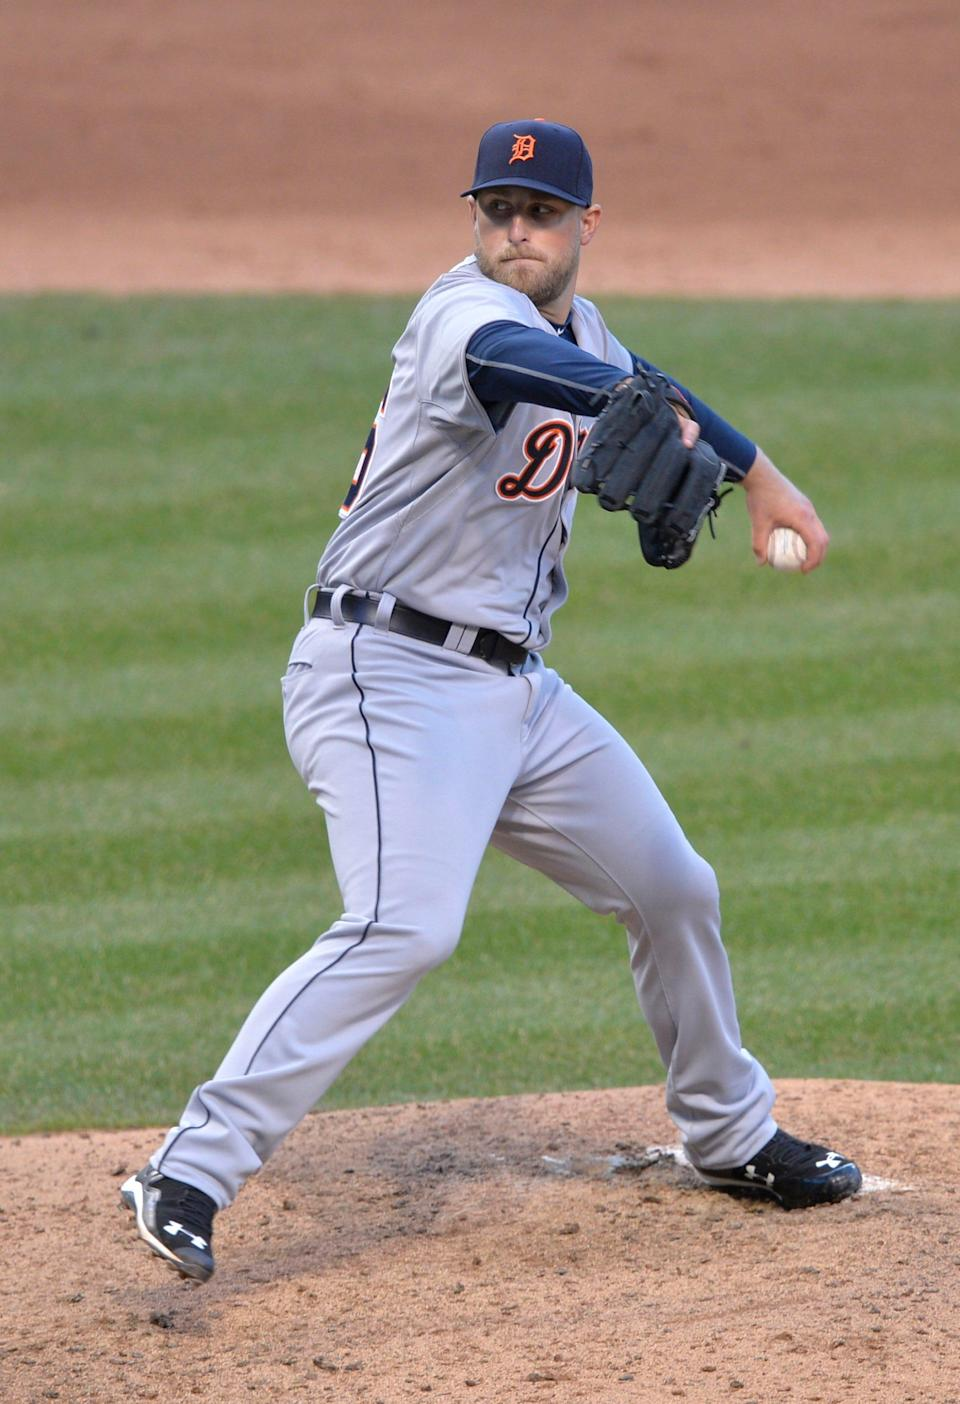 Detroit Tigers relief pitcher Ian Krol delivers in the eighth inning against the Cleveland Indians at Progressive Field.